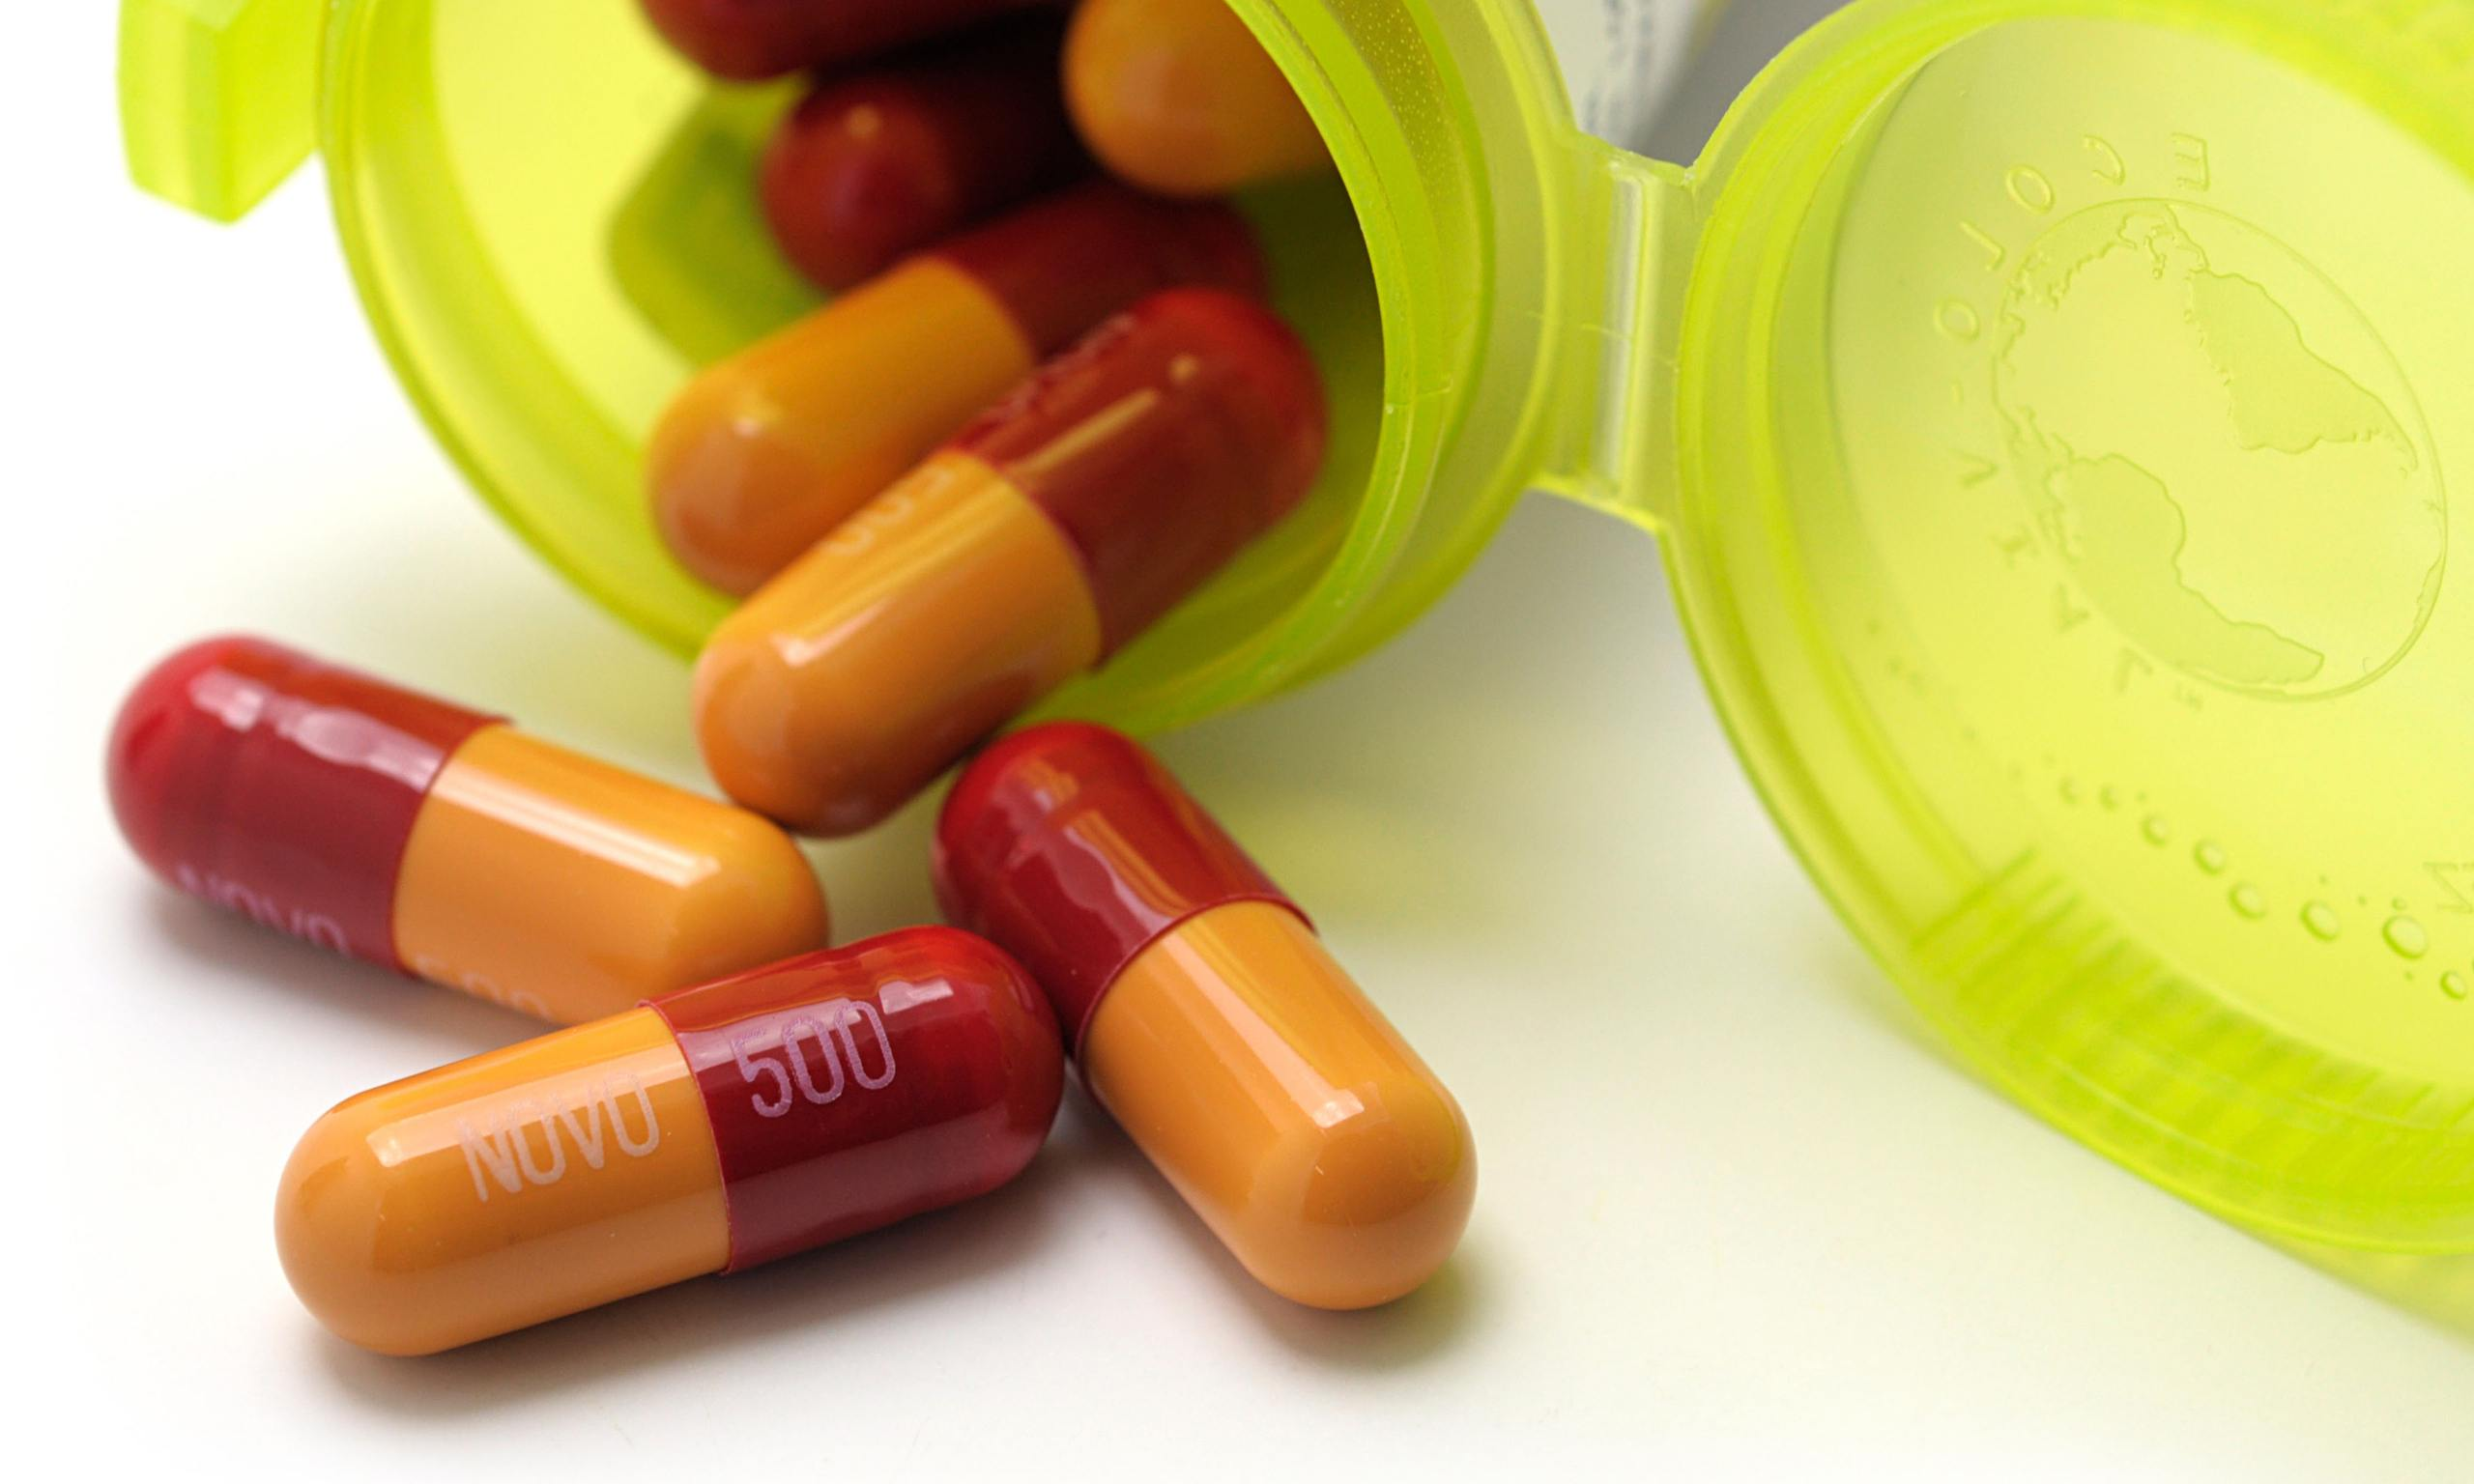 Antibiotics are losing effectiveness in every country ...